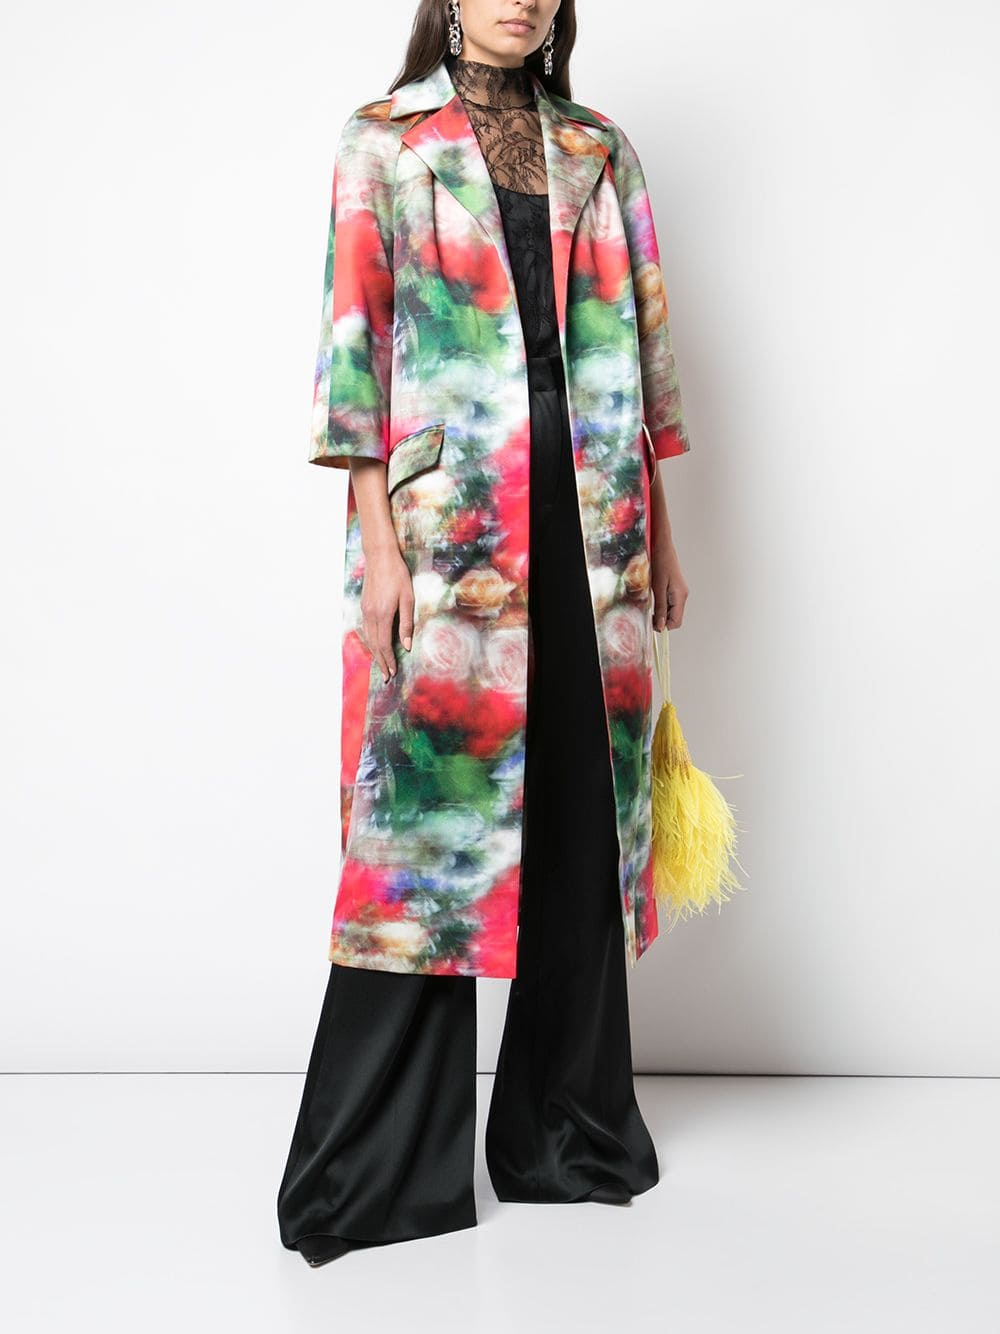 OPERA COAT IN PRINTED DUCHESS SATIN